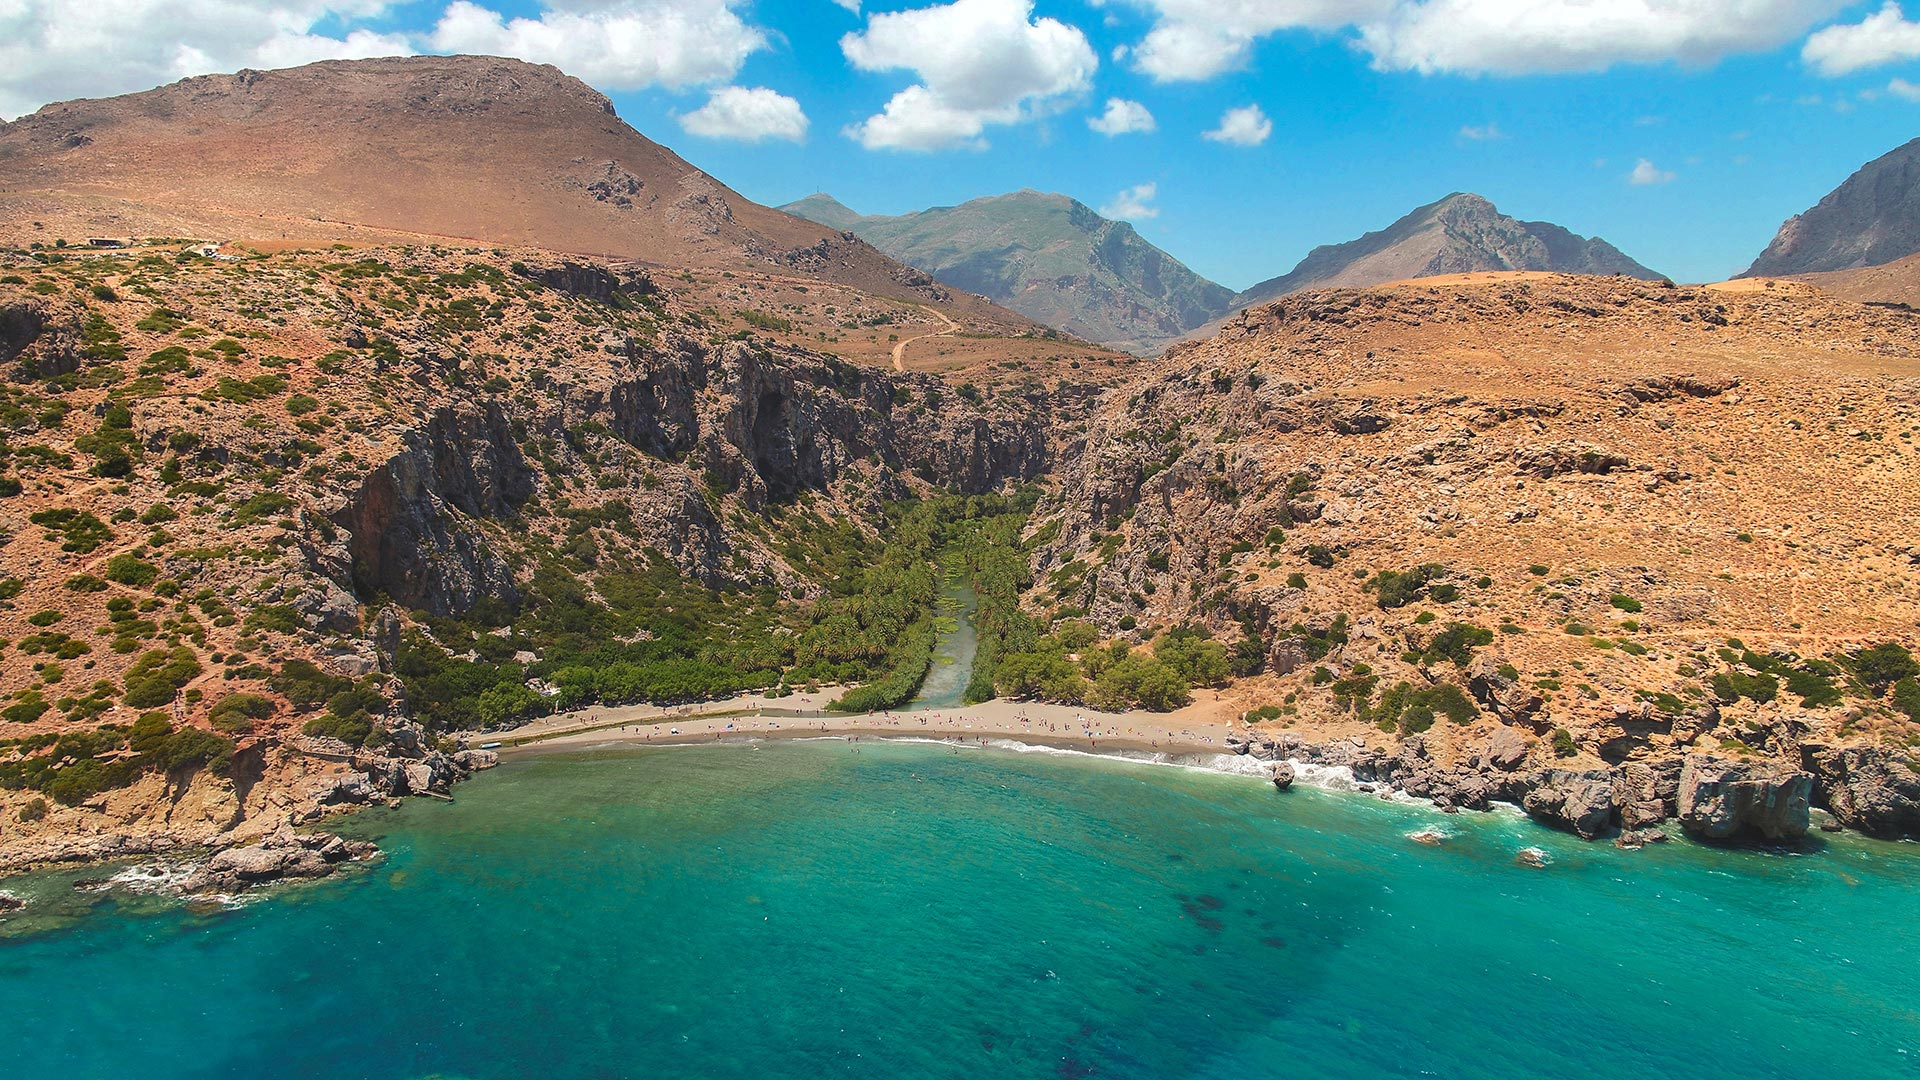 Preveli beach, with its palm grove, saltwater lagoon and dramatic Cretan gorge as scenery